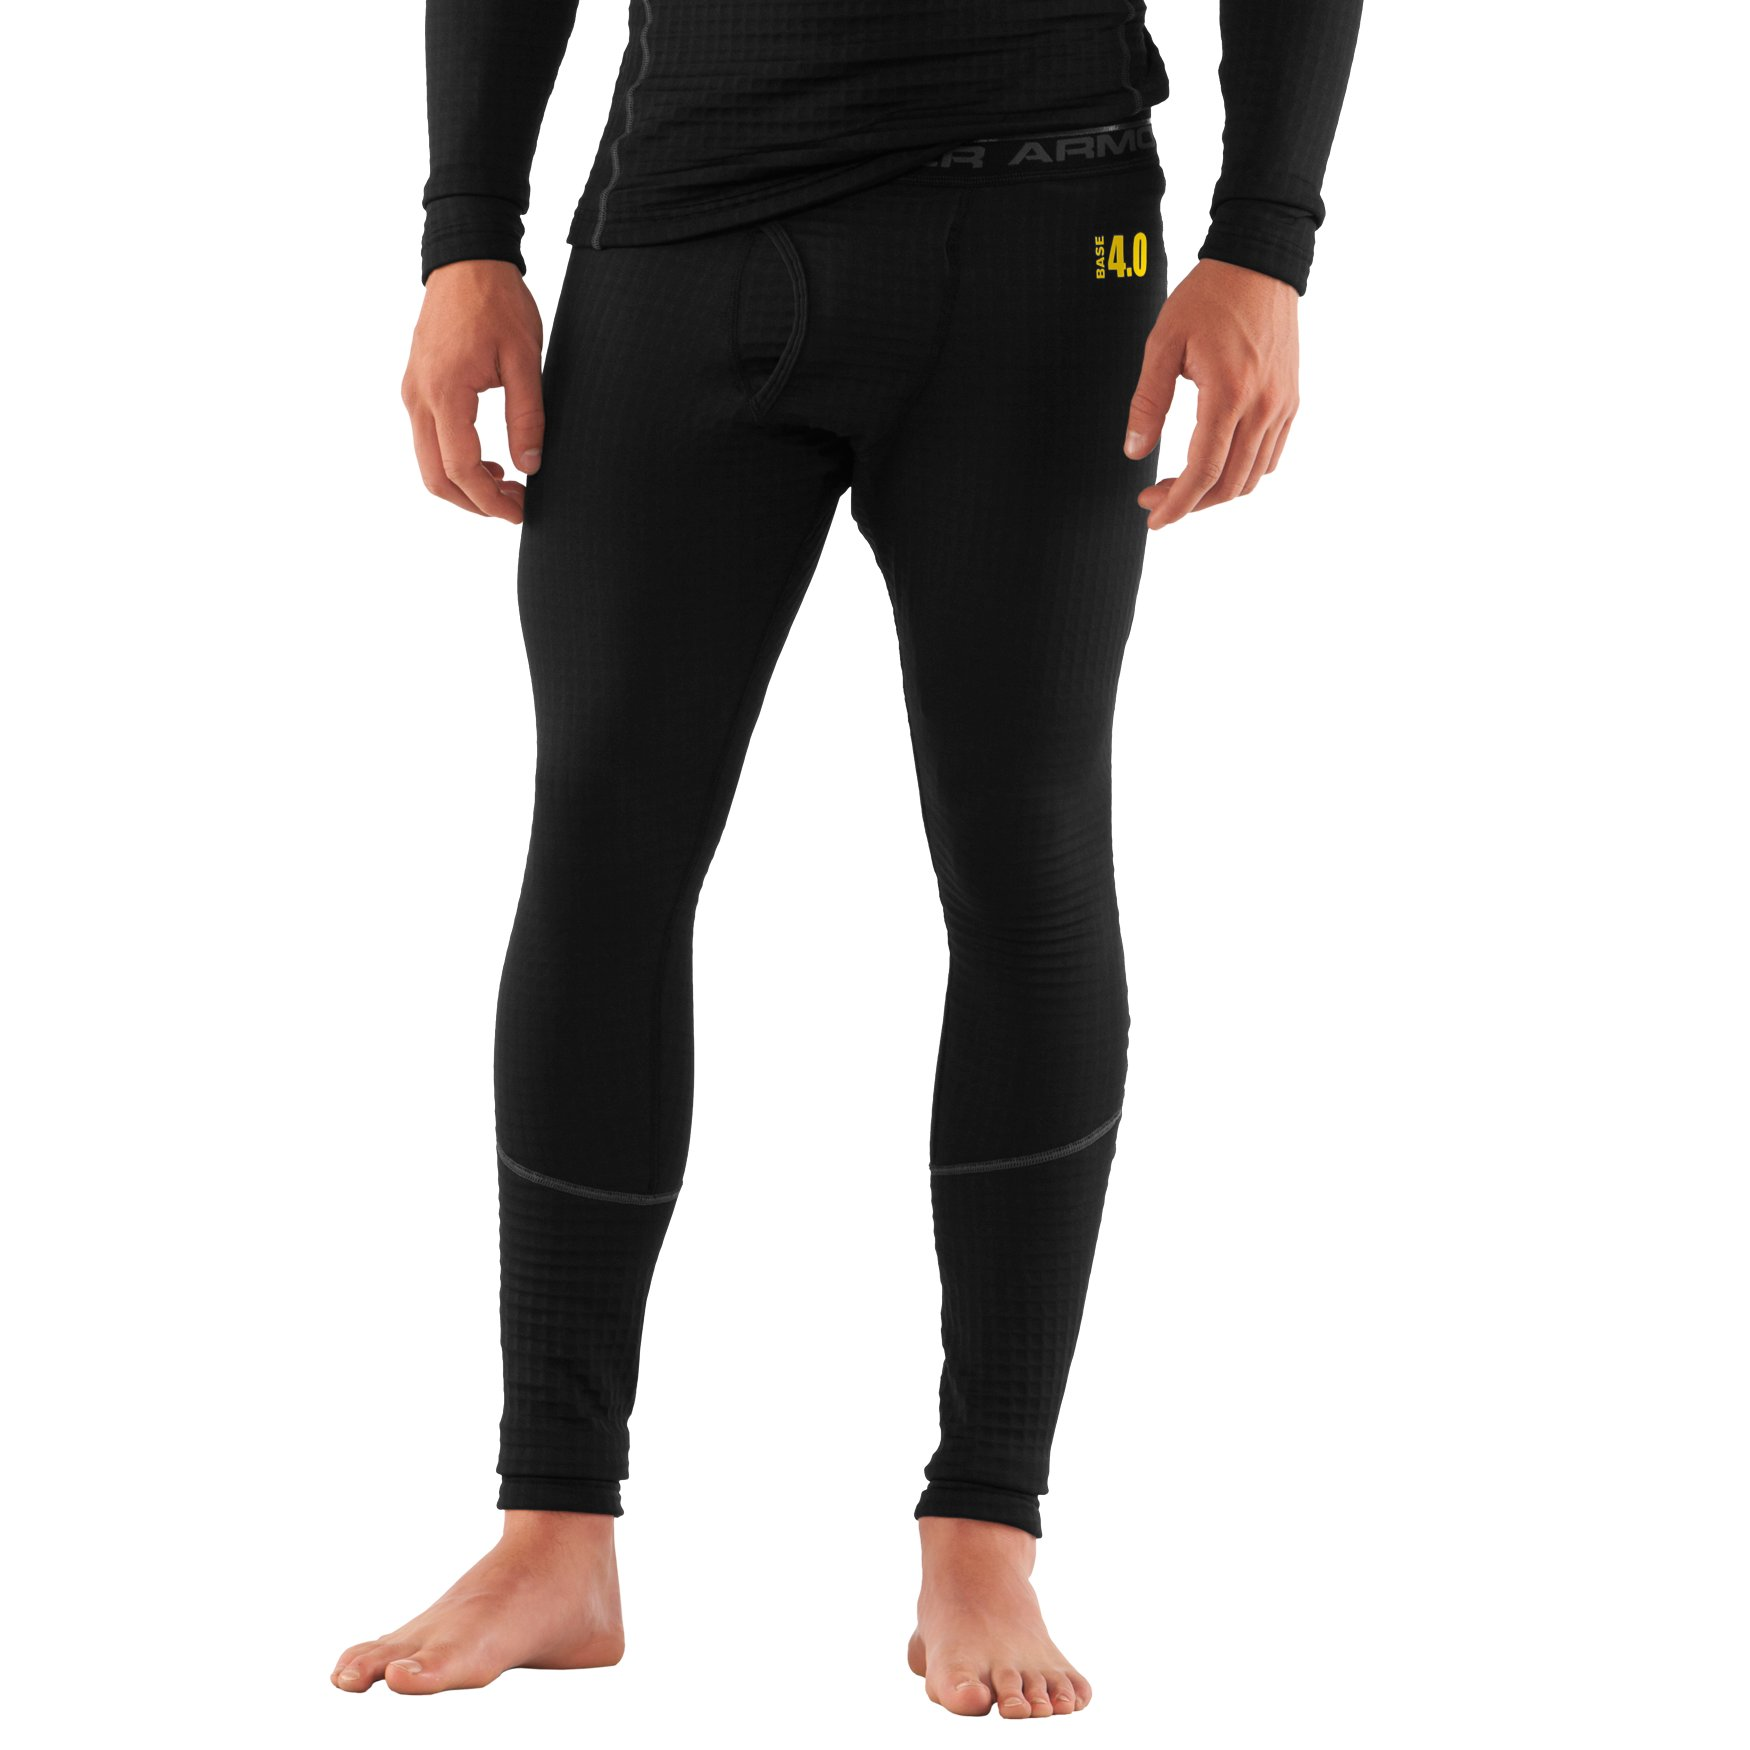 5858eb78d41e41 Adam Asks About Men's UA Base™ 4.0 Leggings - Needle